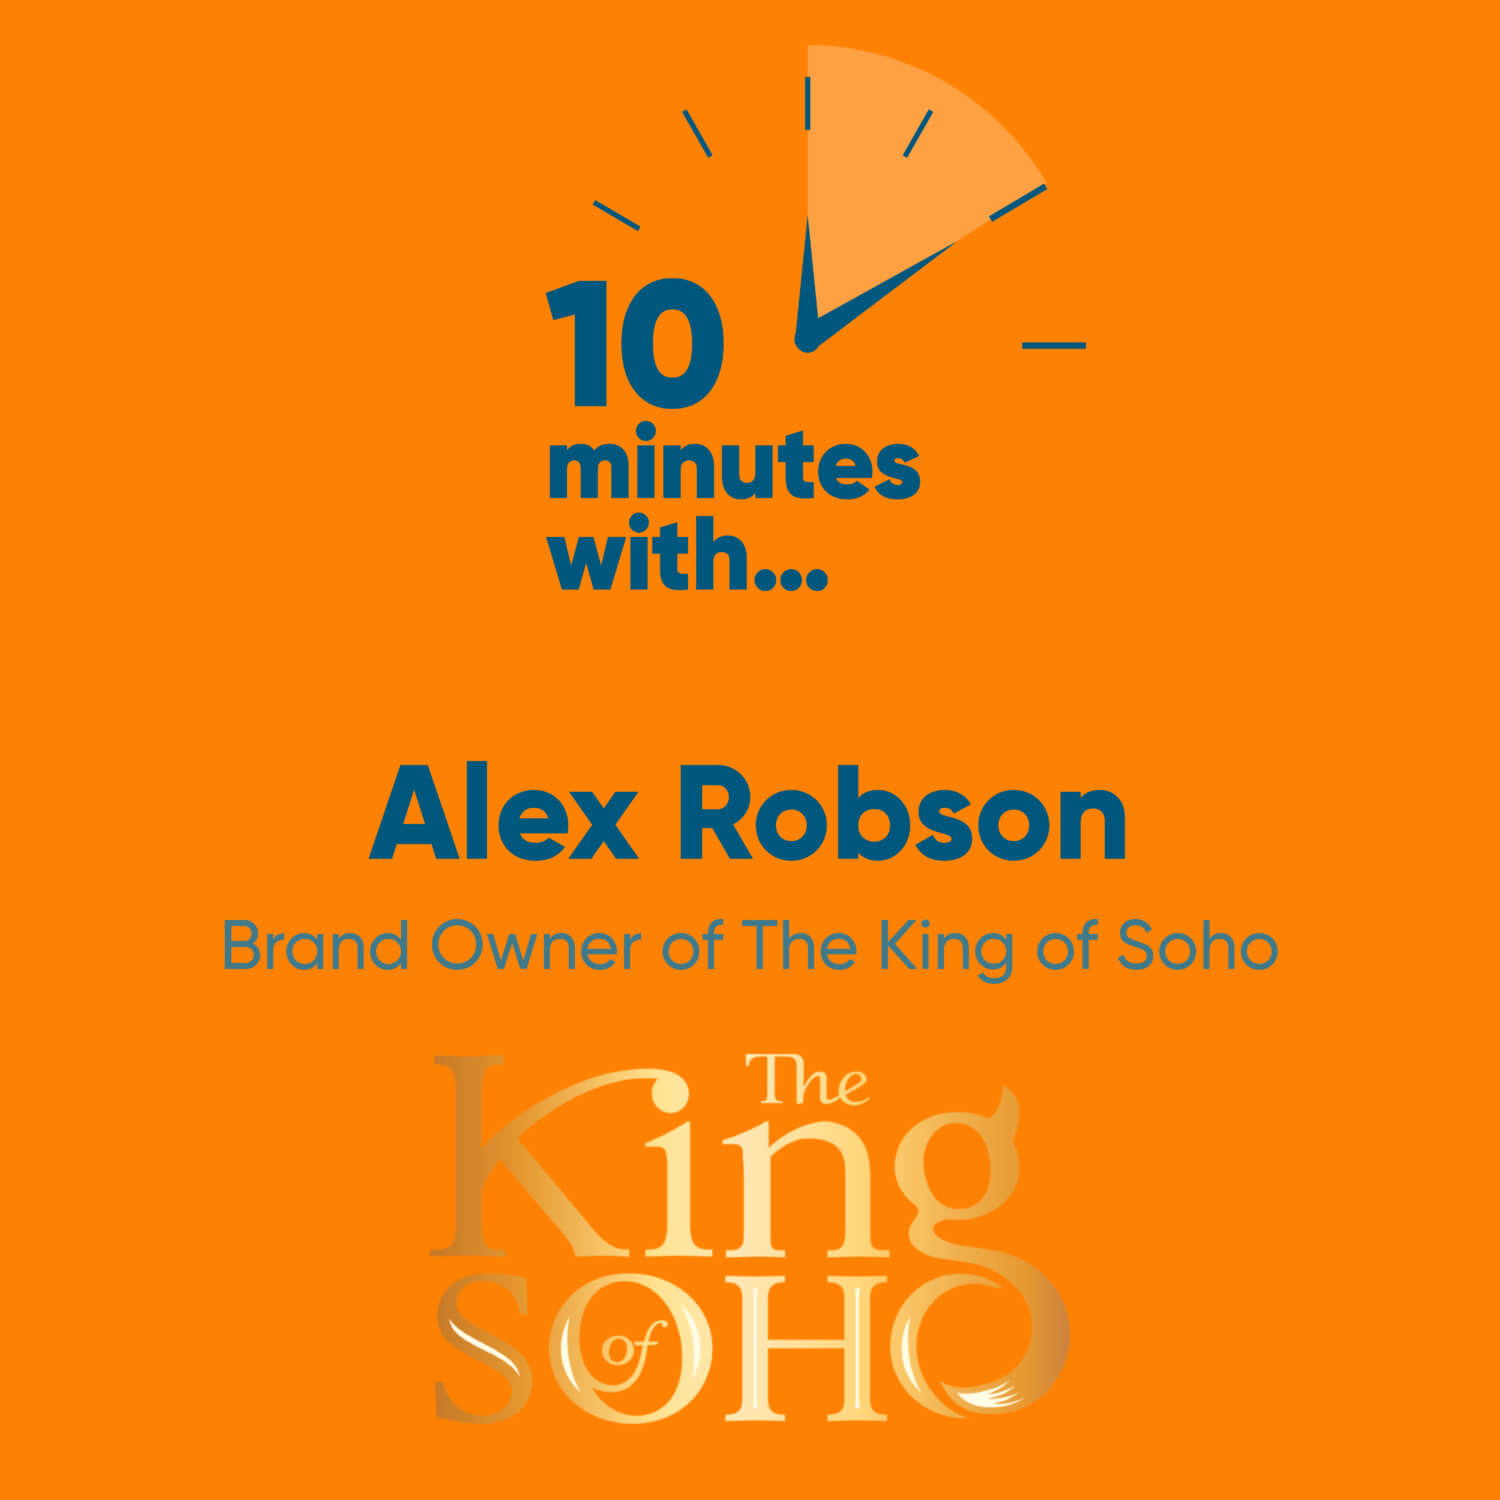 Alex Robson, Brand Owner of The King of Soho - Ten Minutes With...